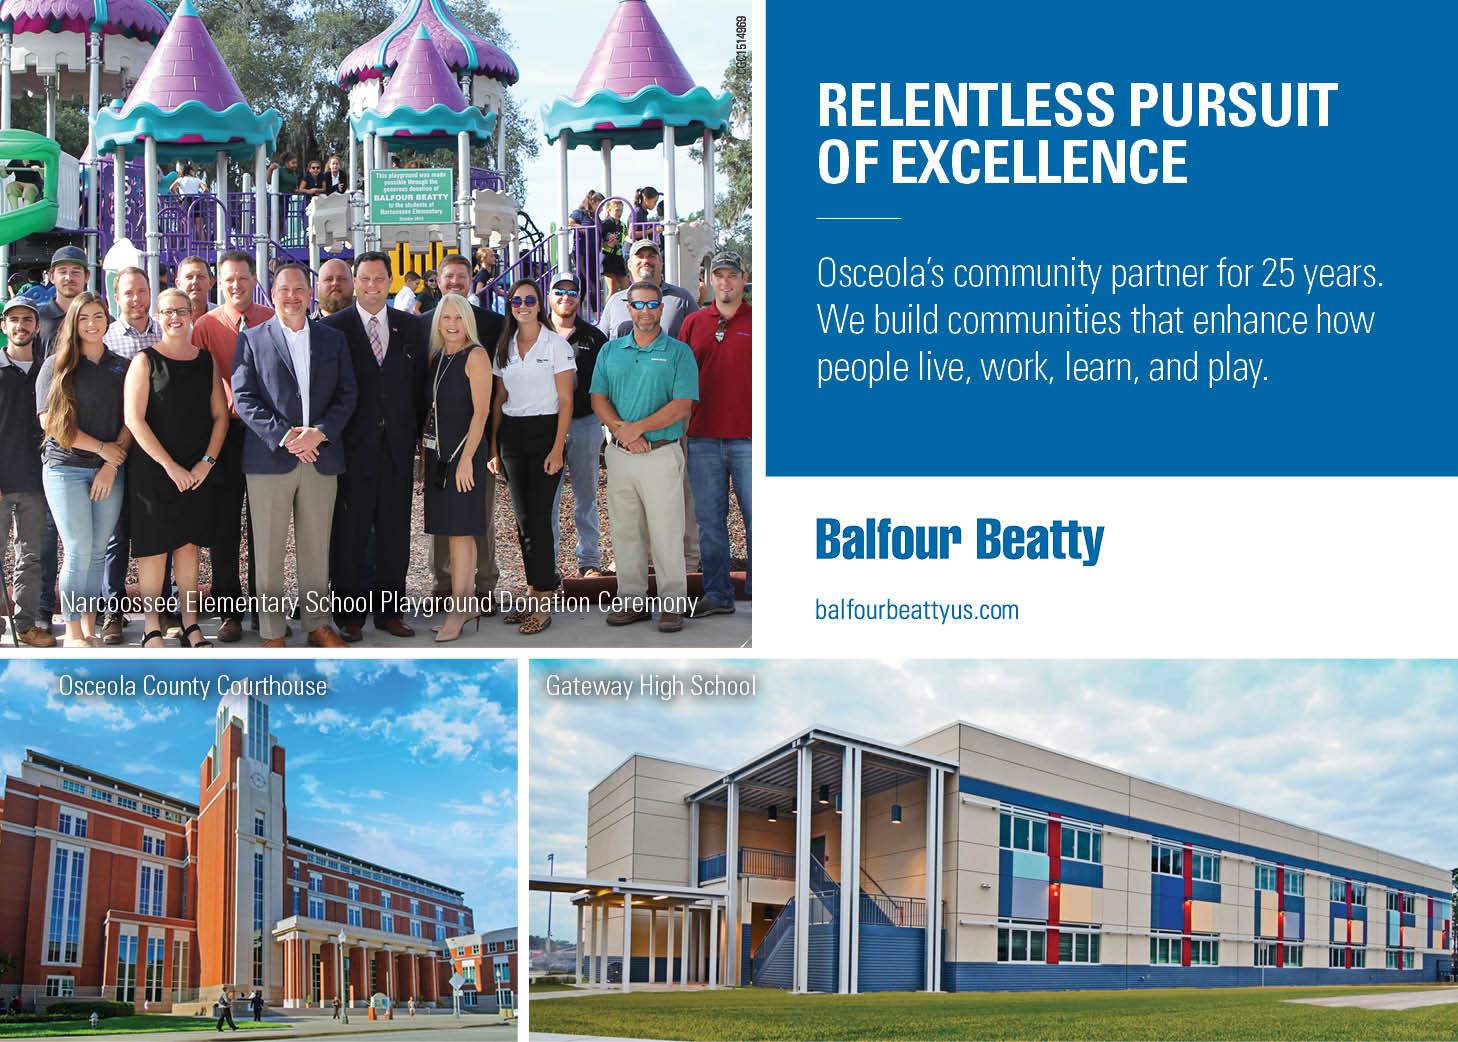 Balfour Beatty Kissimmee-Osceola County Chamber Ad